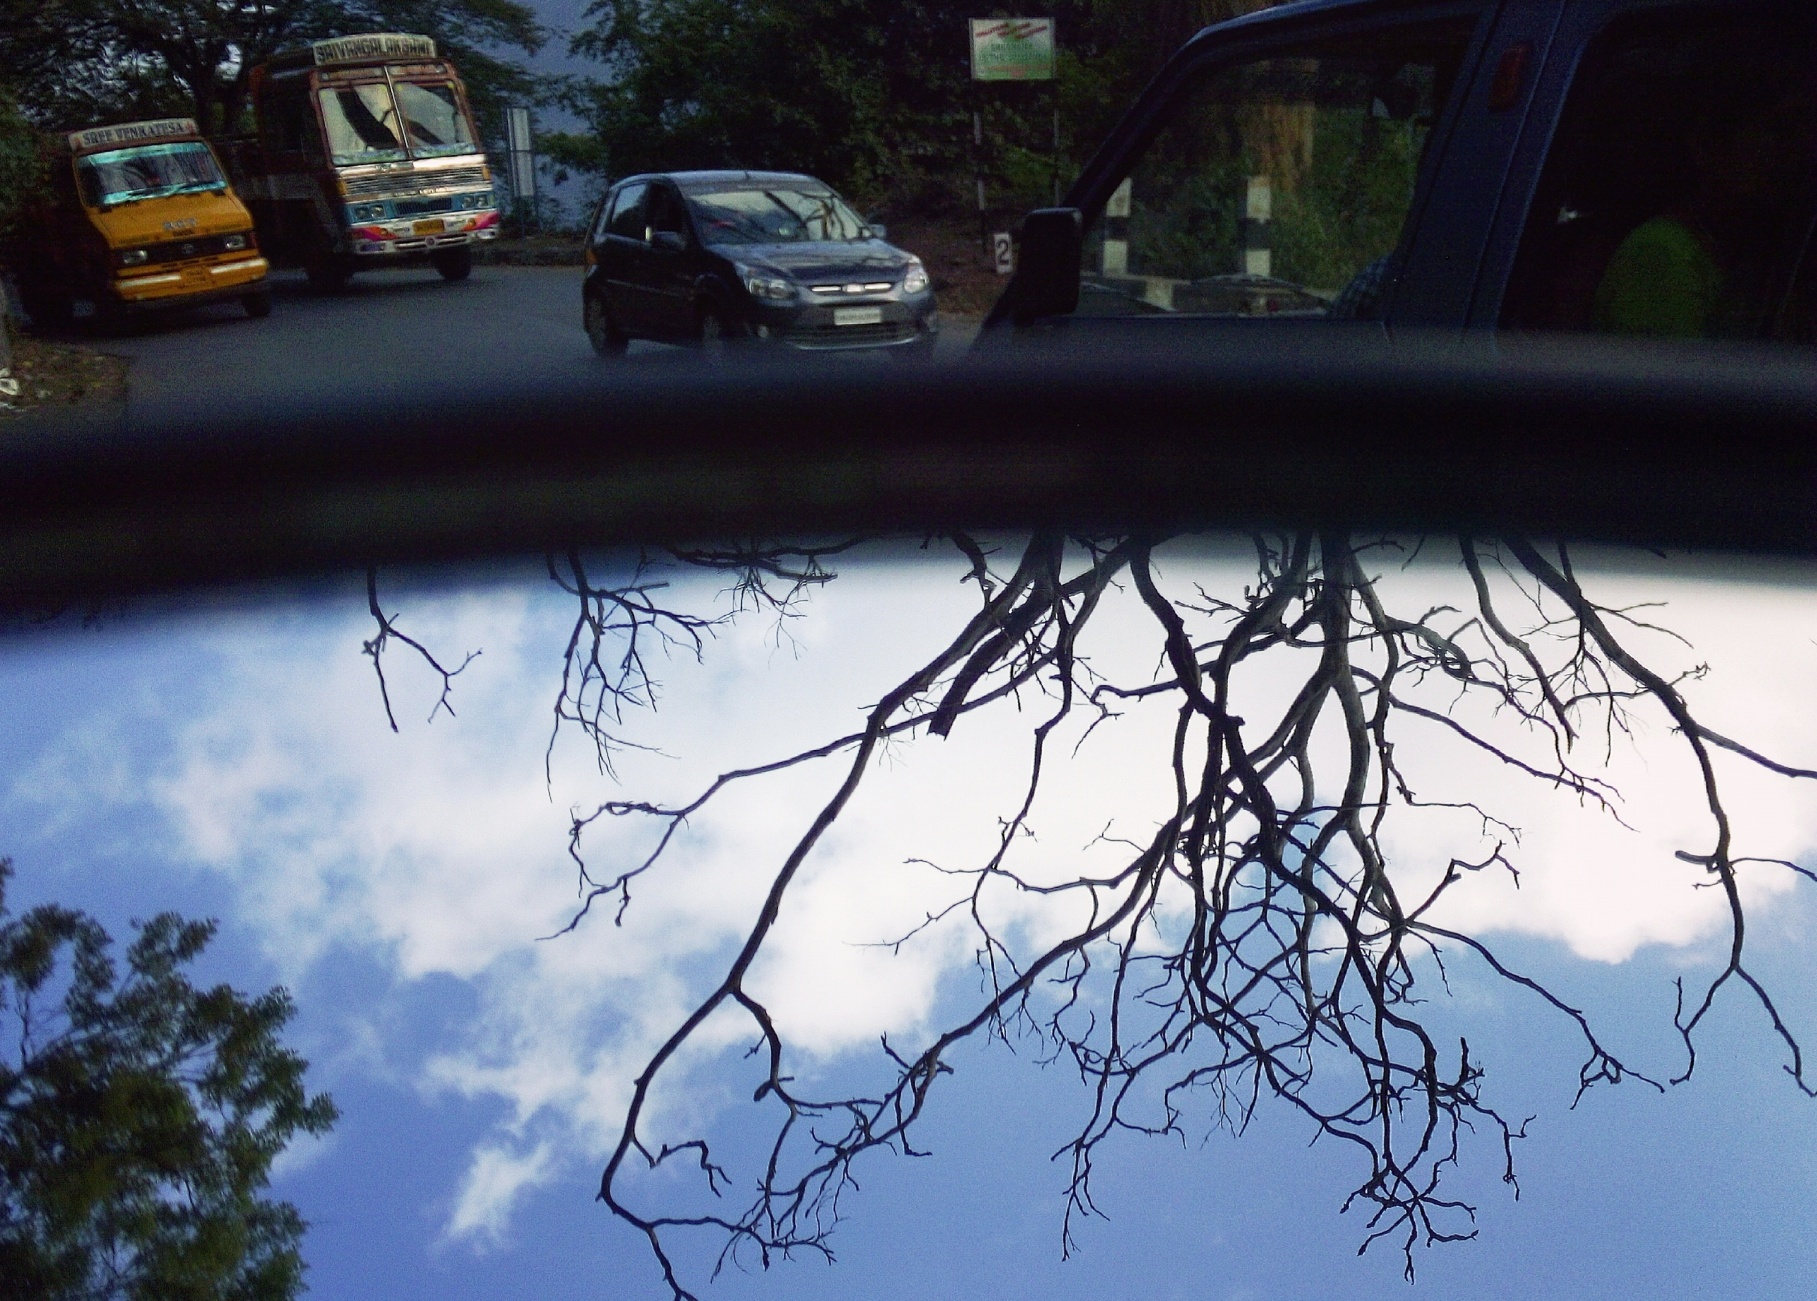 A view of a trees upside down in a mirror !